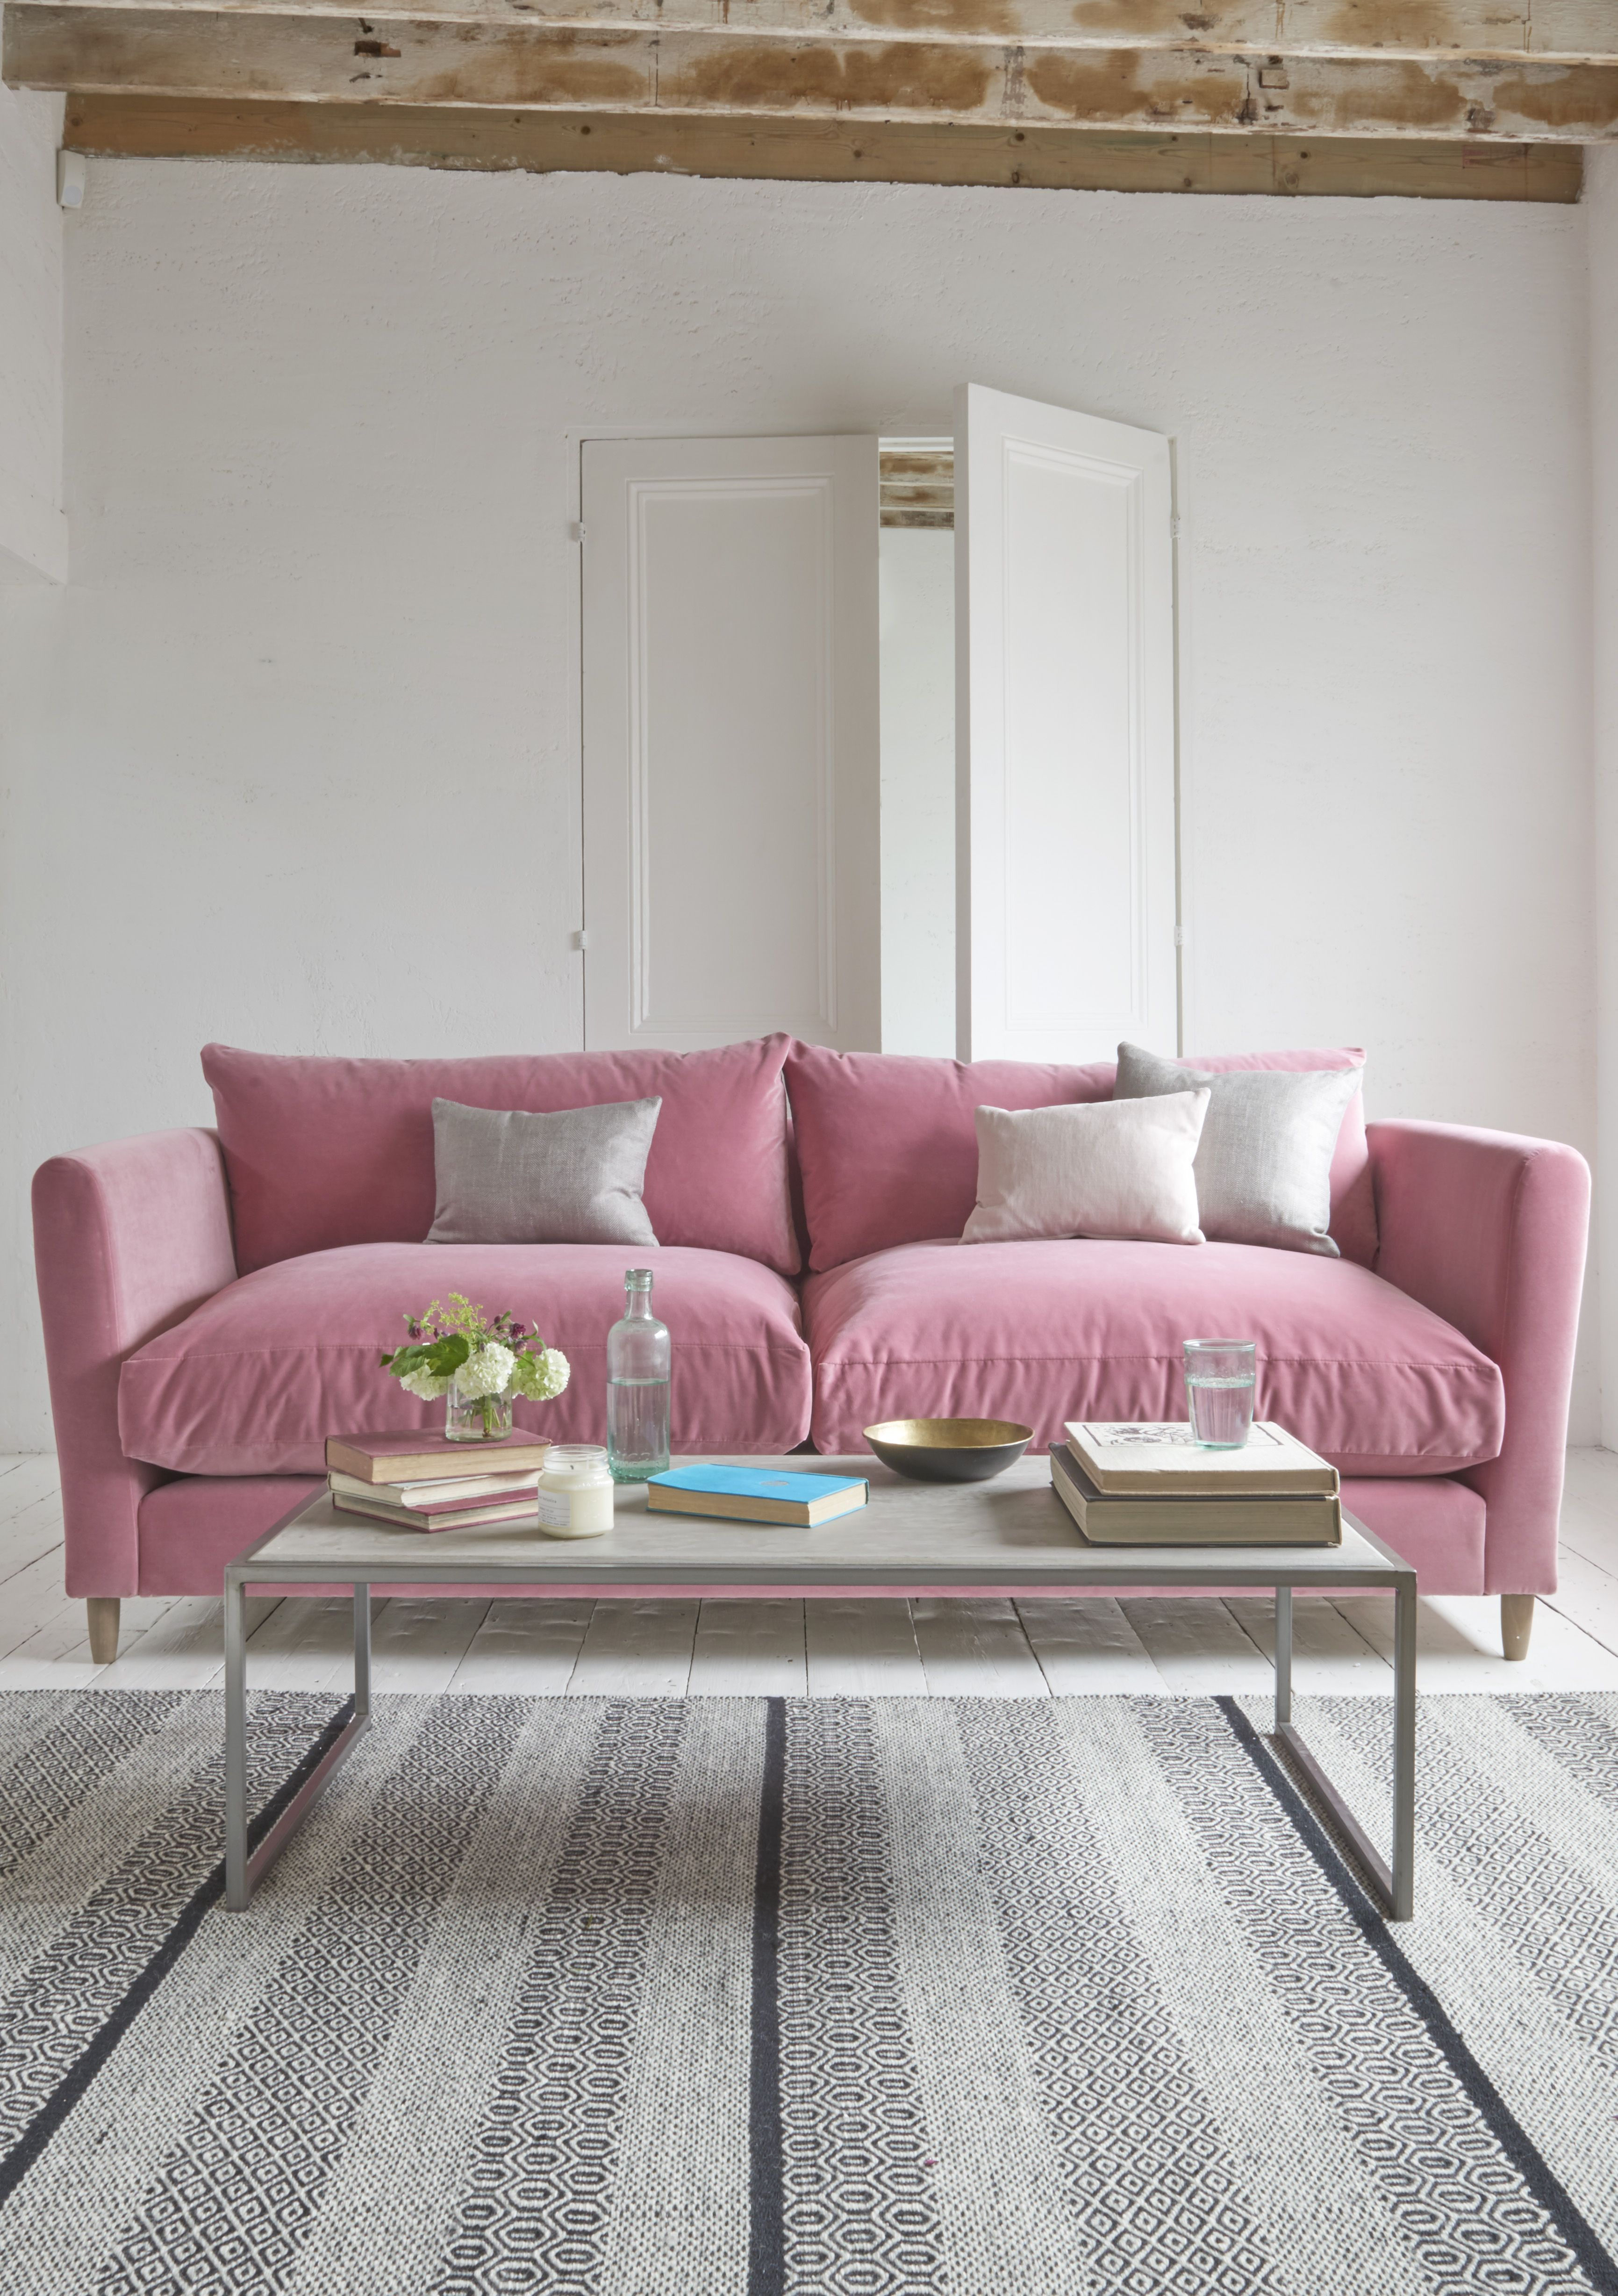 Join Us And Discover De Best Selection Of Mid Century Modern Sofa Design Inspirations At Http Essent Pink Living Room Living Room Sofa Pink Couch Living Room